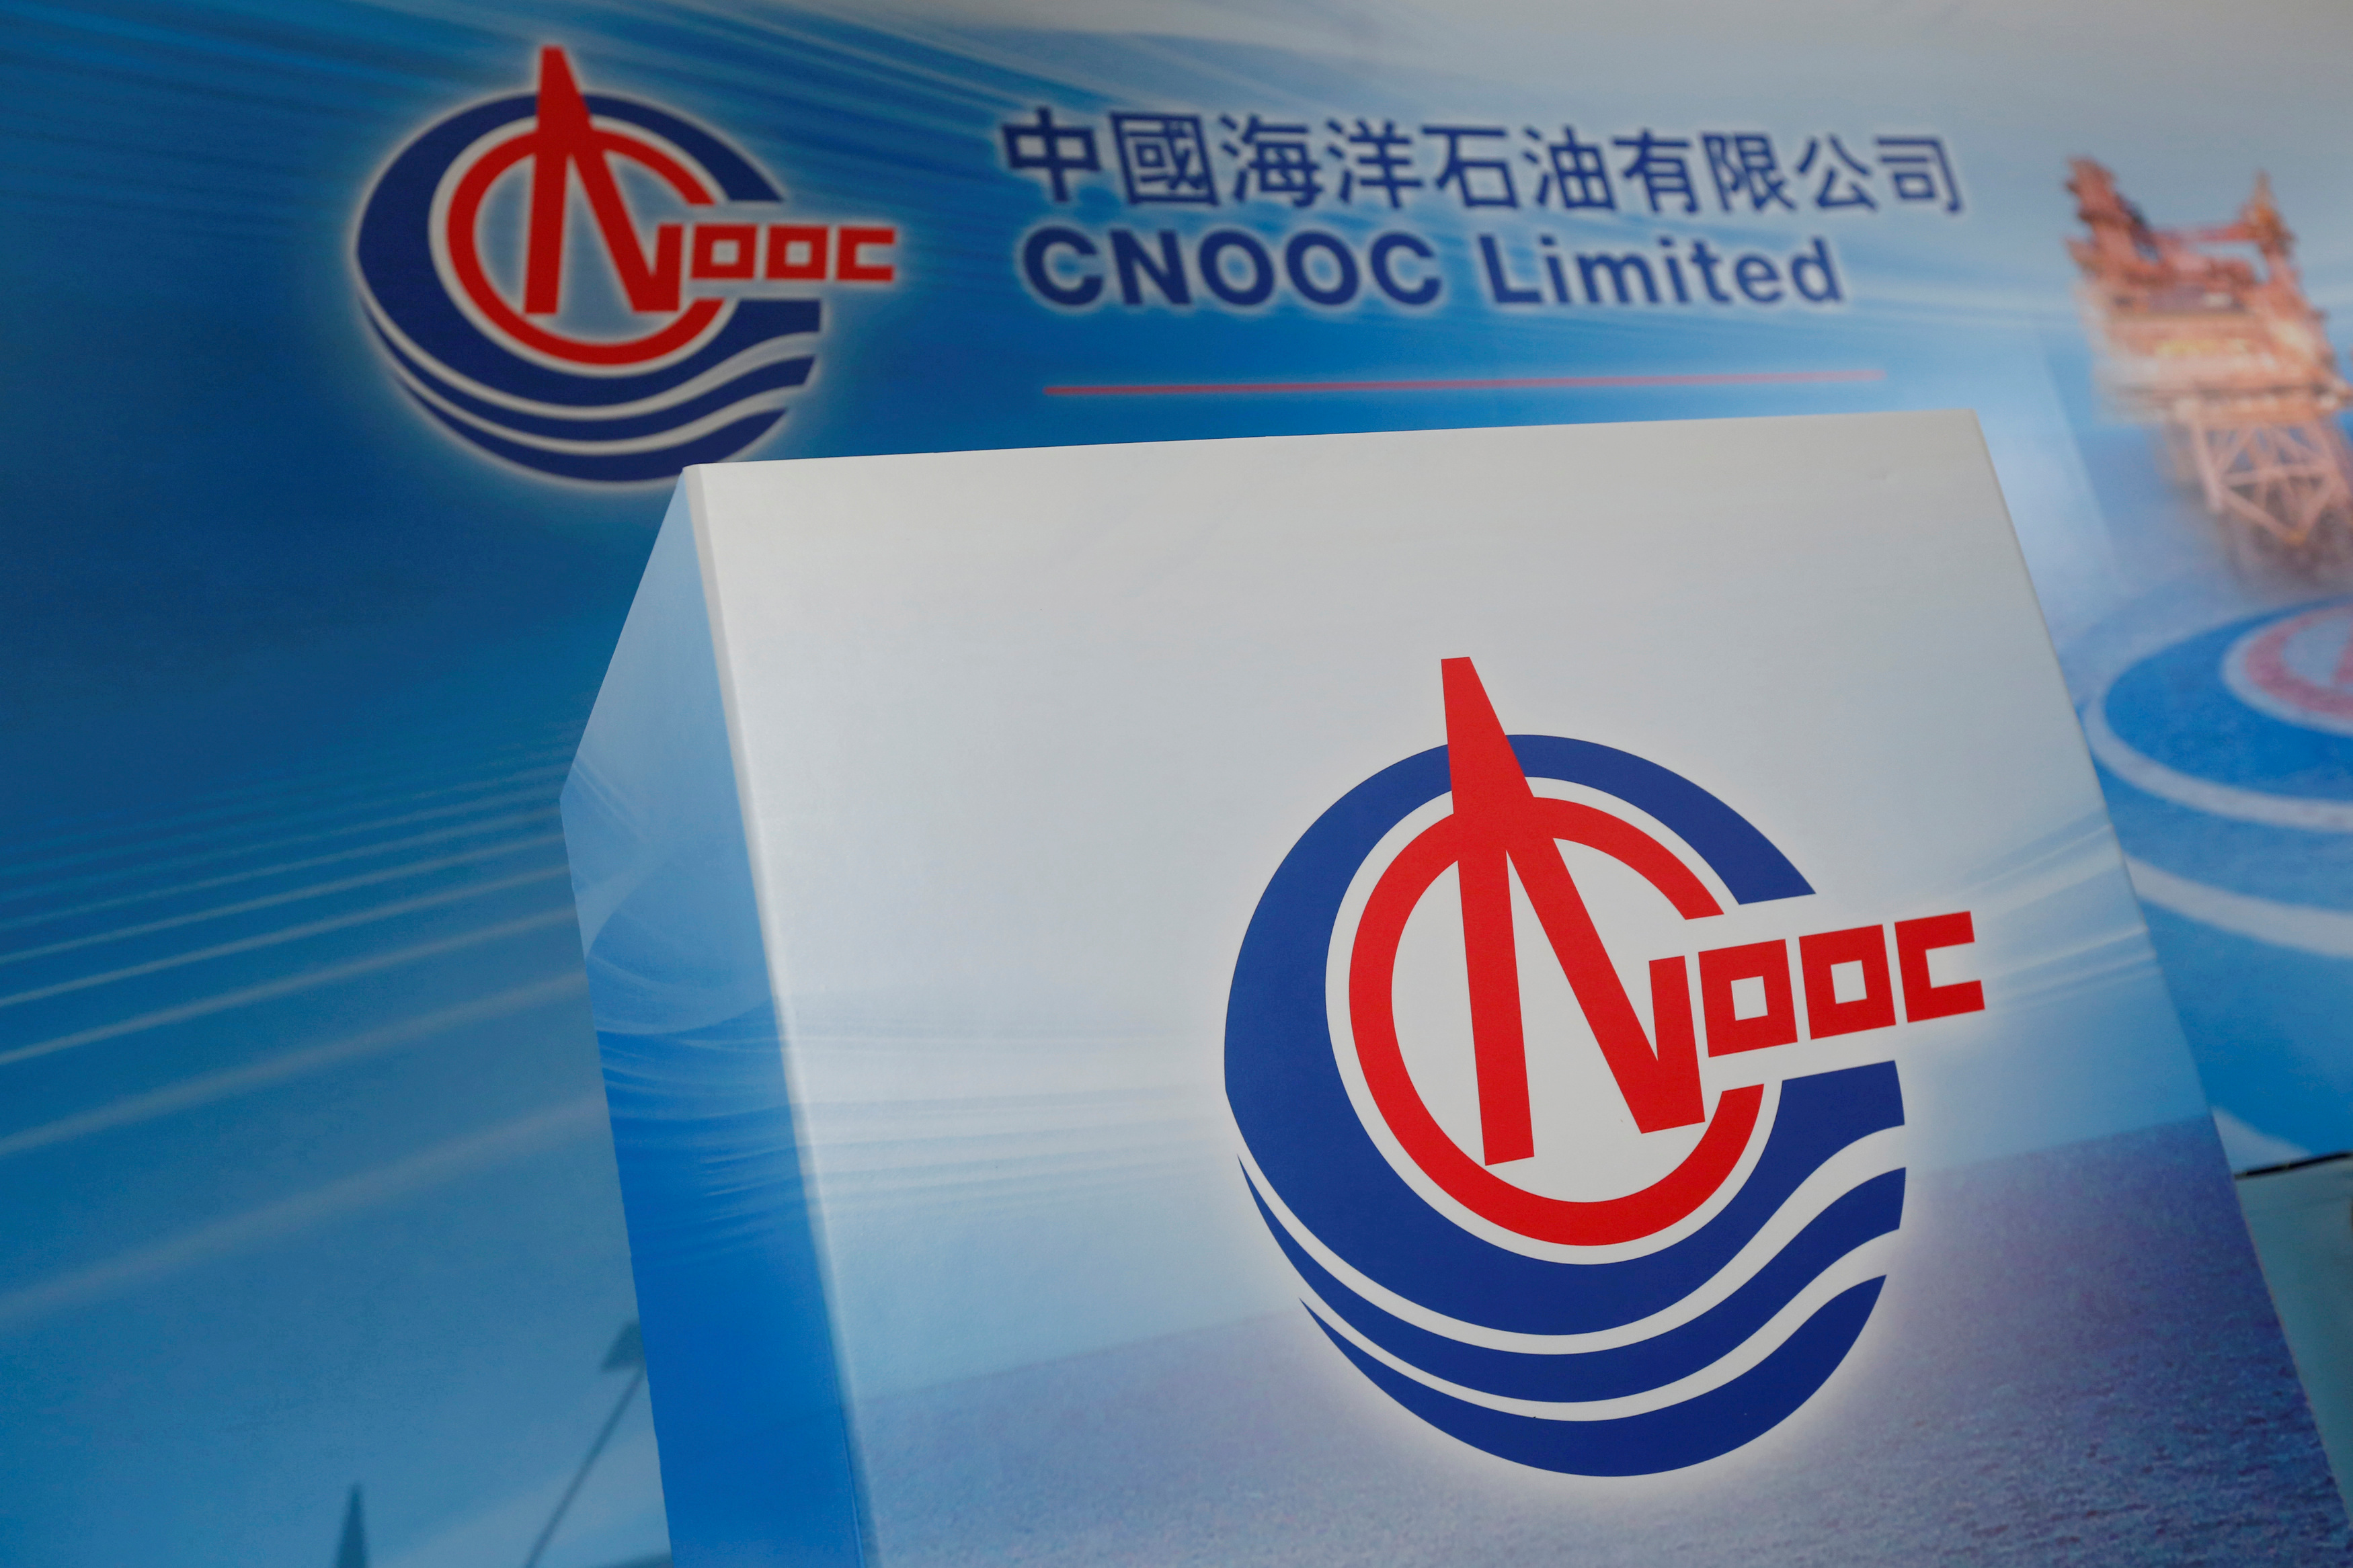 Logos of China National Offshore Oil Corporation (CNOOC) are displayed at a news conference on the company's interim results in Hong Kong, China, March 23, 2017. REUTERS/Bobby Yip//File Photo